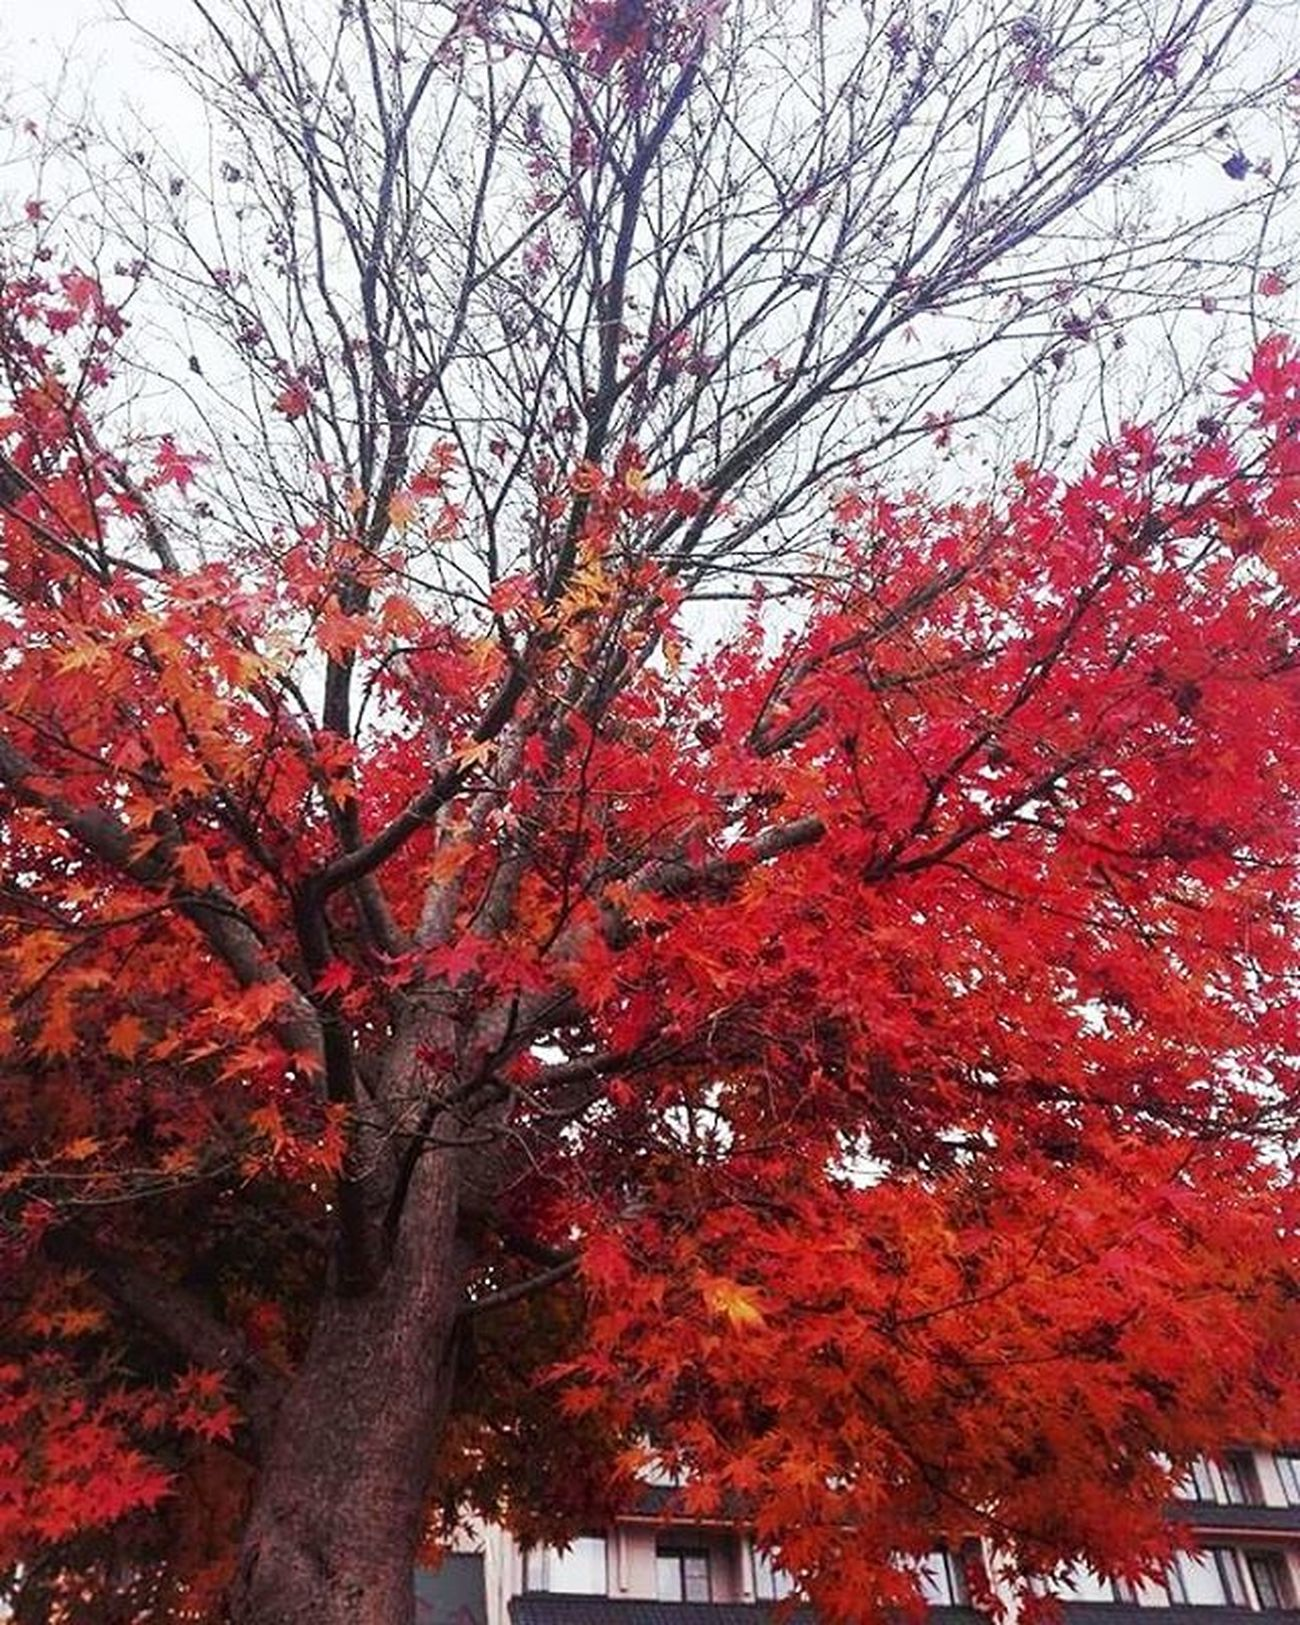 Patience gains all things. ❤ Autumn Japan Tokyo Tokyoblog Red Travel Travelgram Memory Nostalgia Wanderlust Nature Throwback